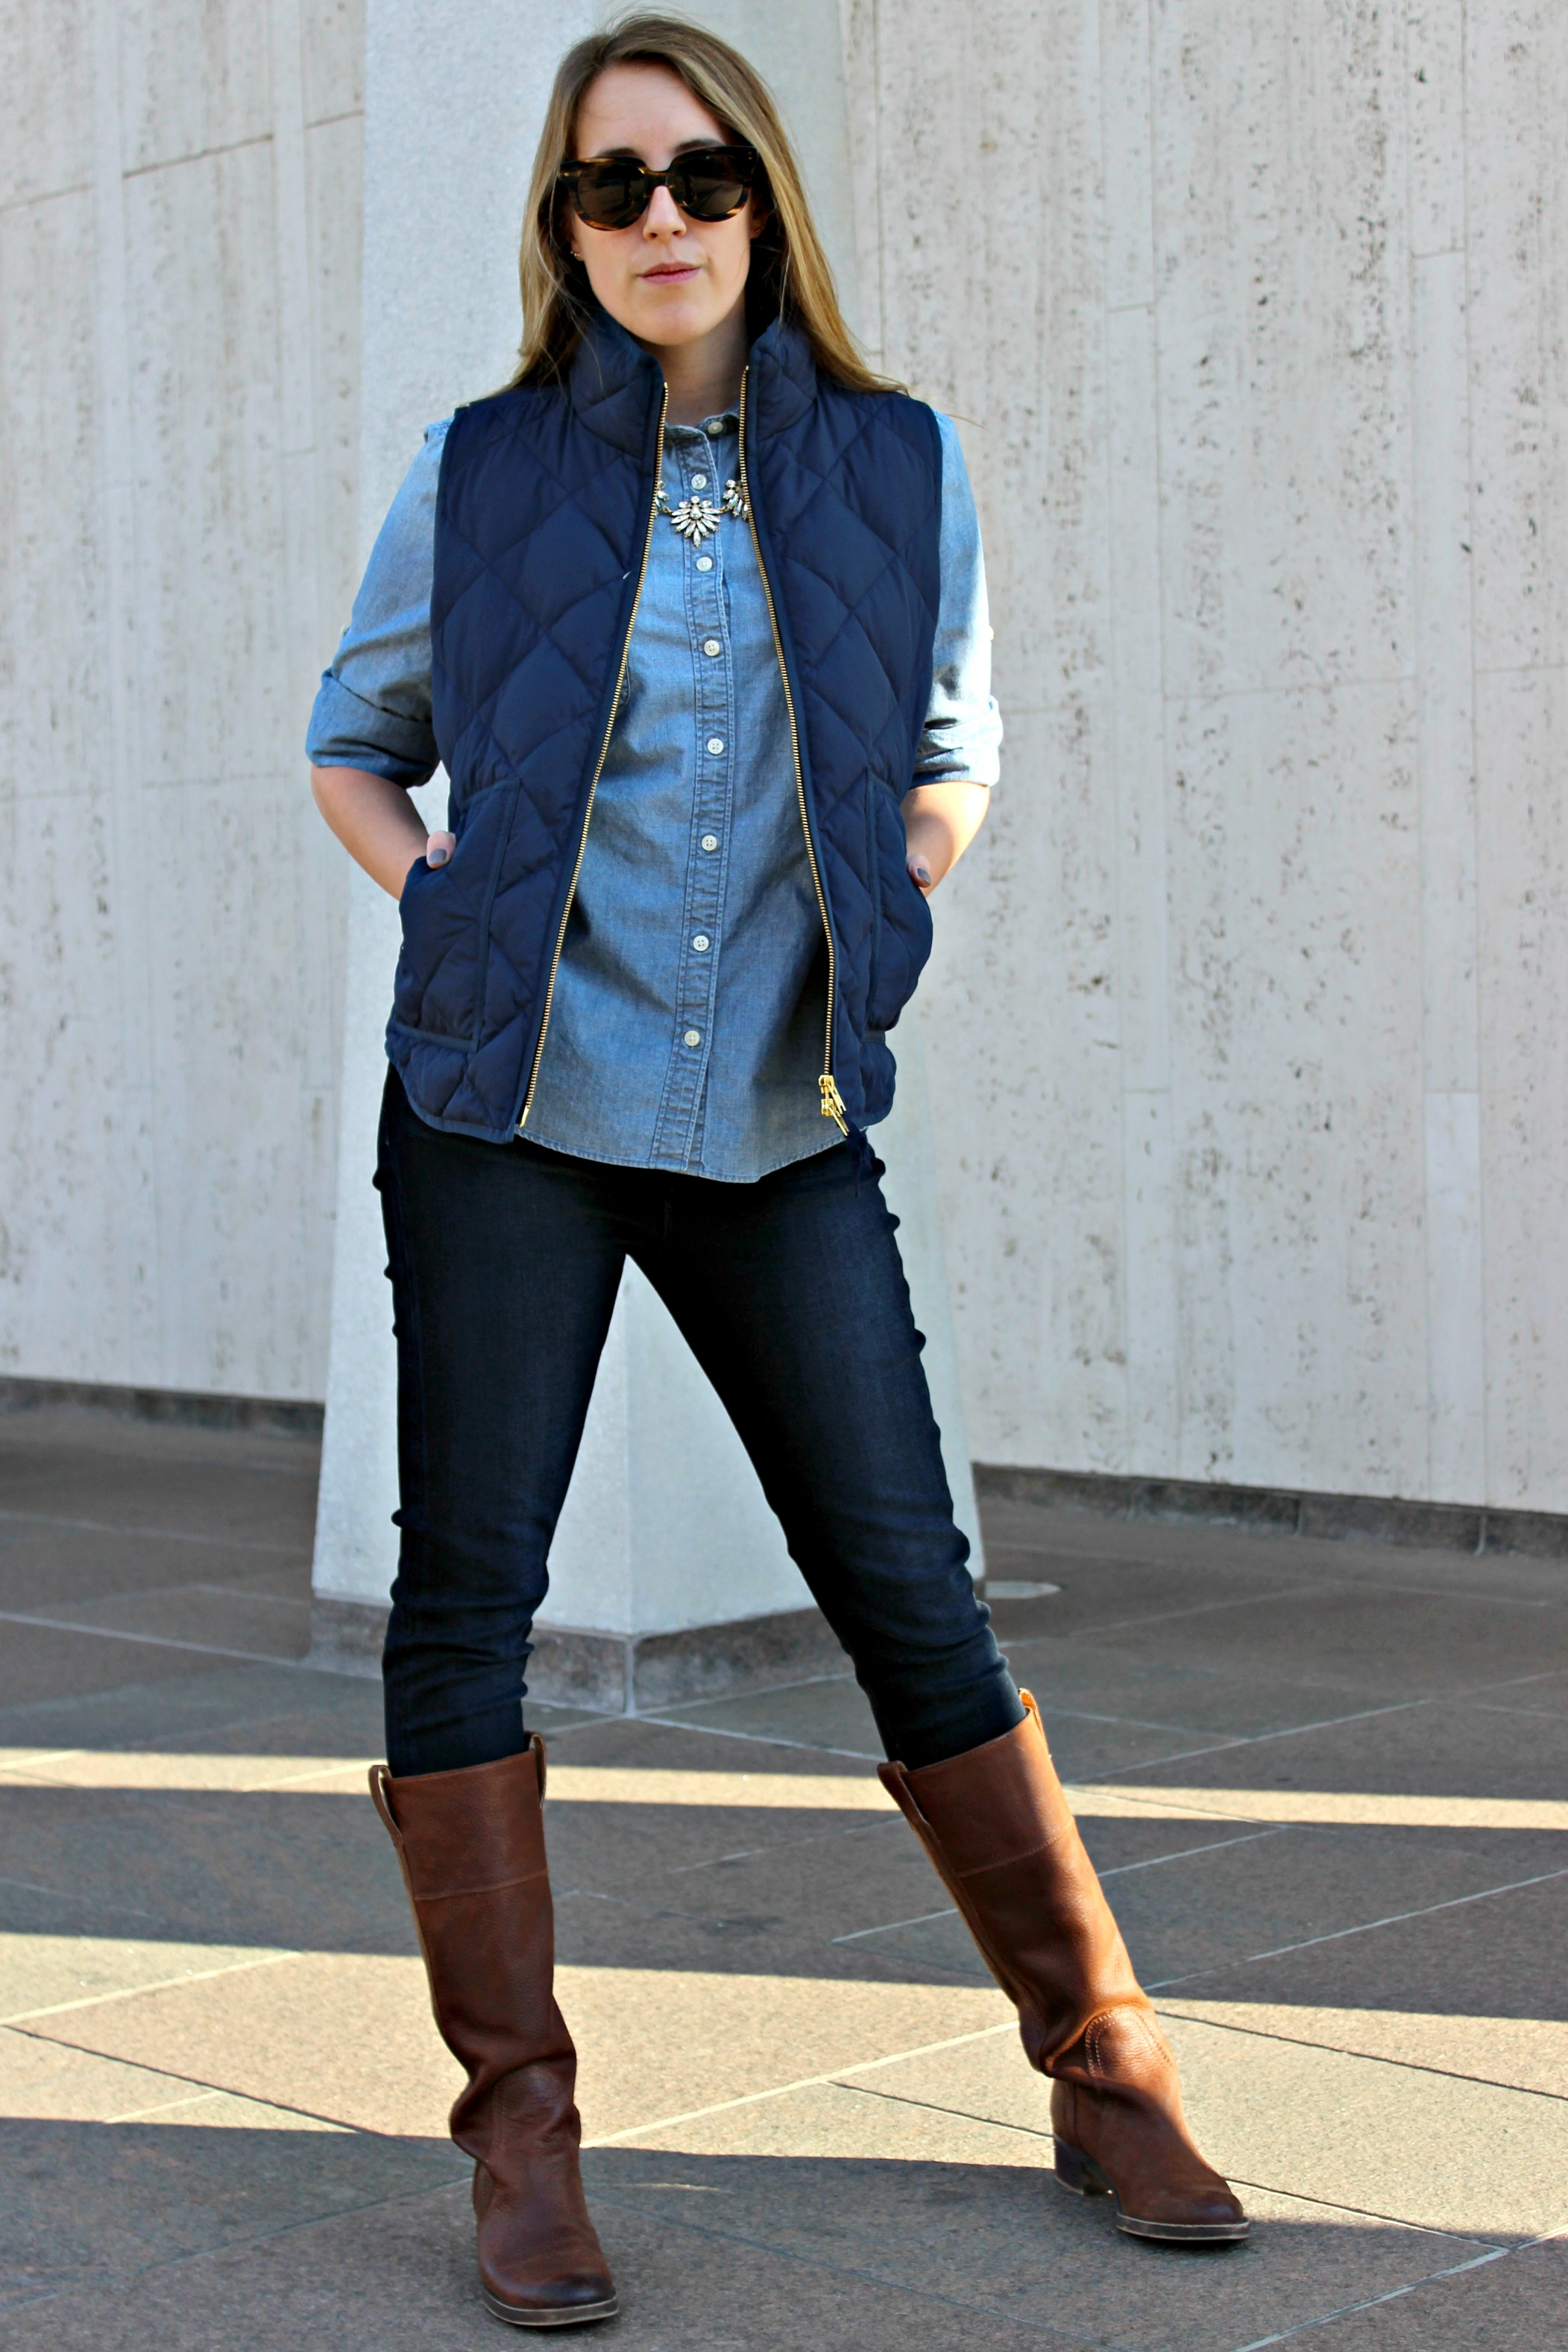 Wearing: blend in to blue chambray